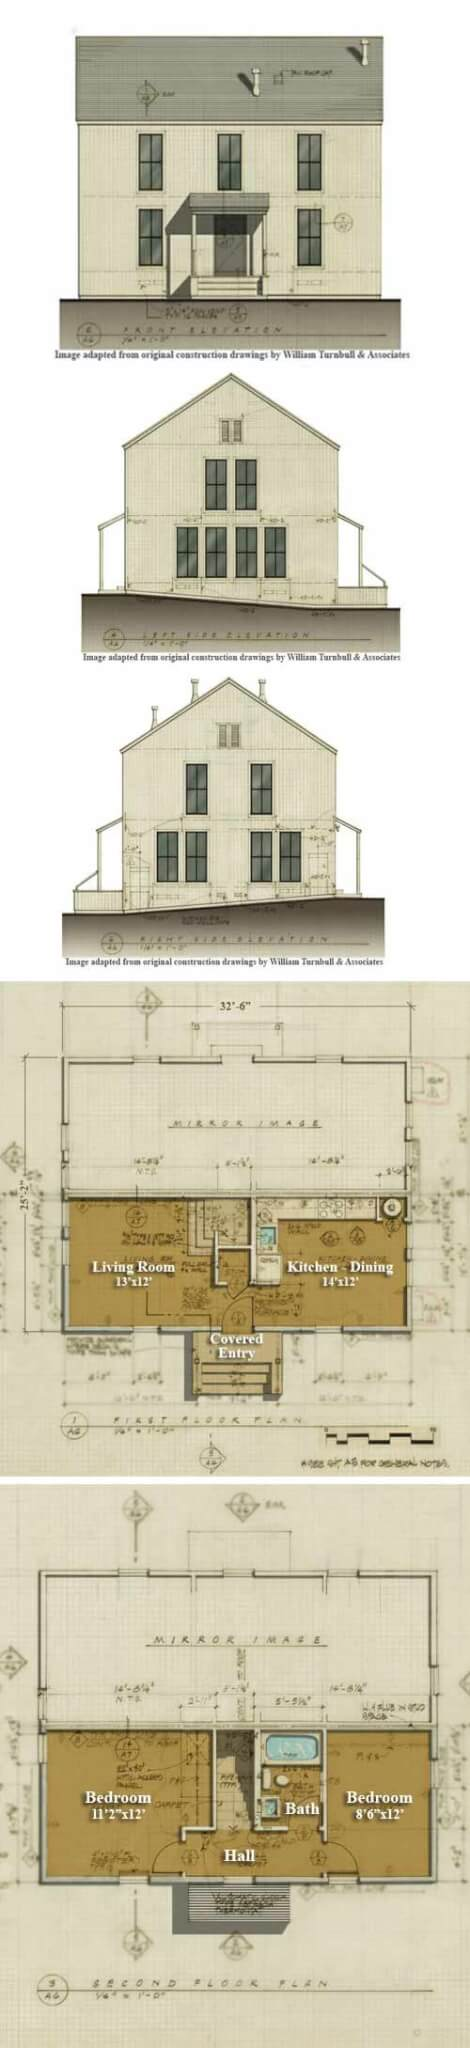 William-Turnbull-duplex-historic-beach-cottage-plan